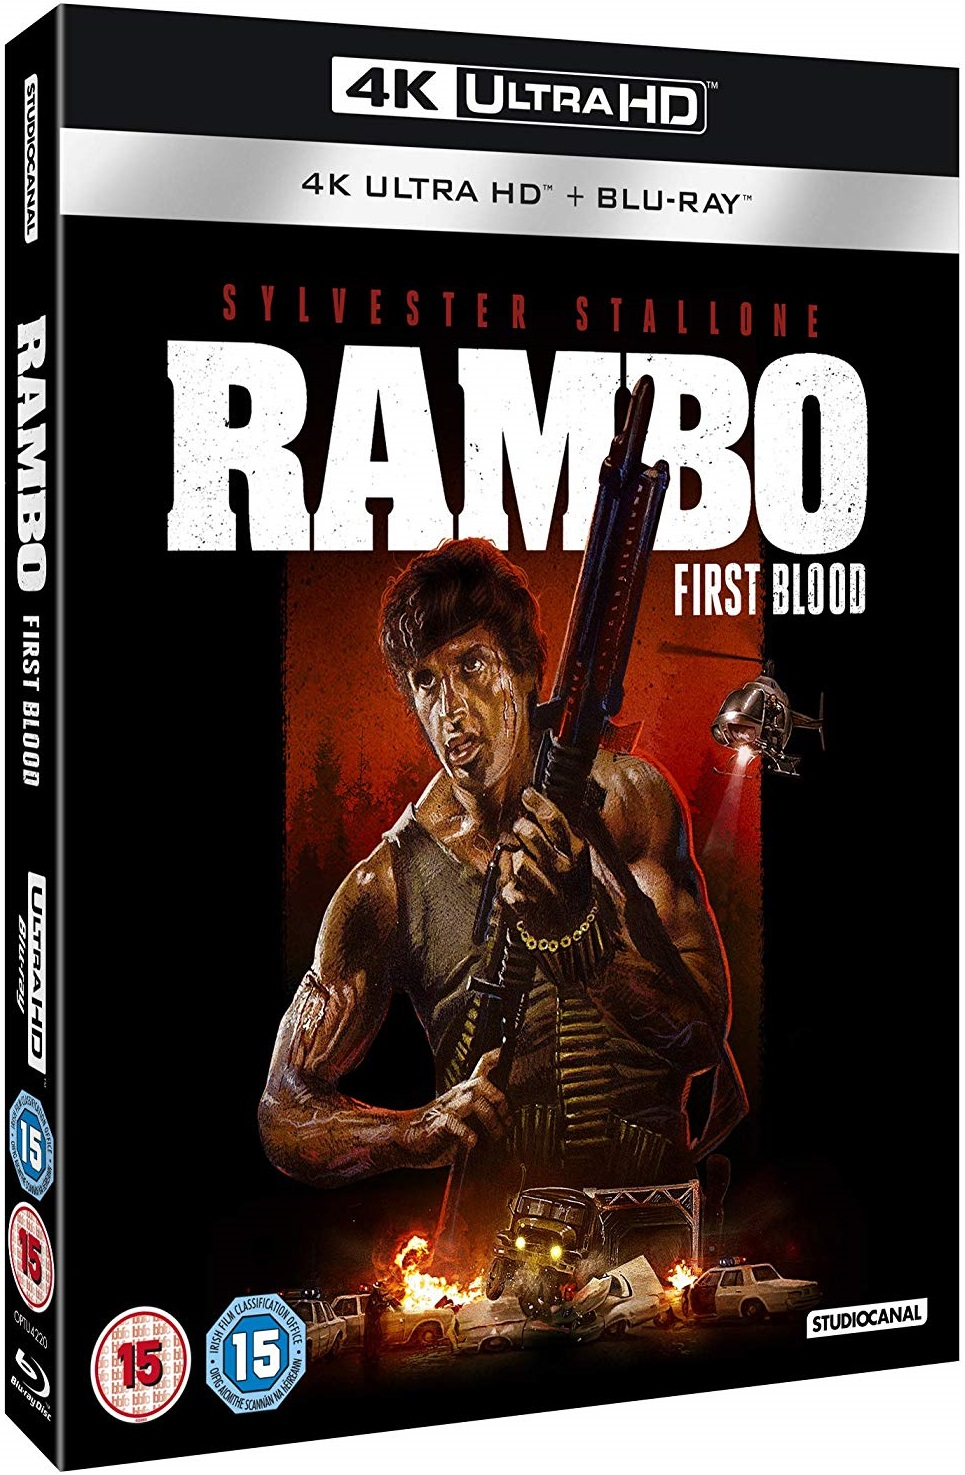 Rambo First Blood UK 4K Blu-Ray